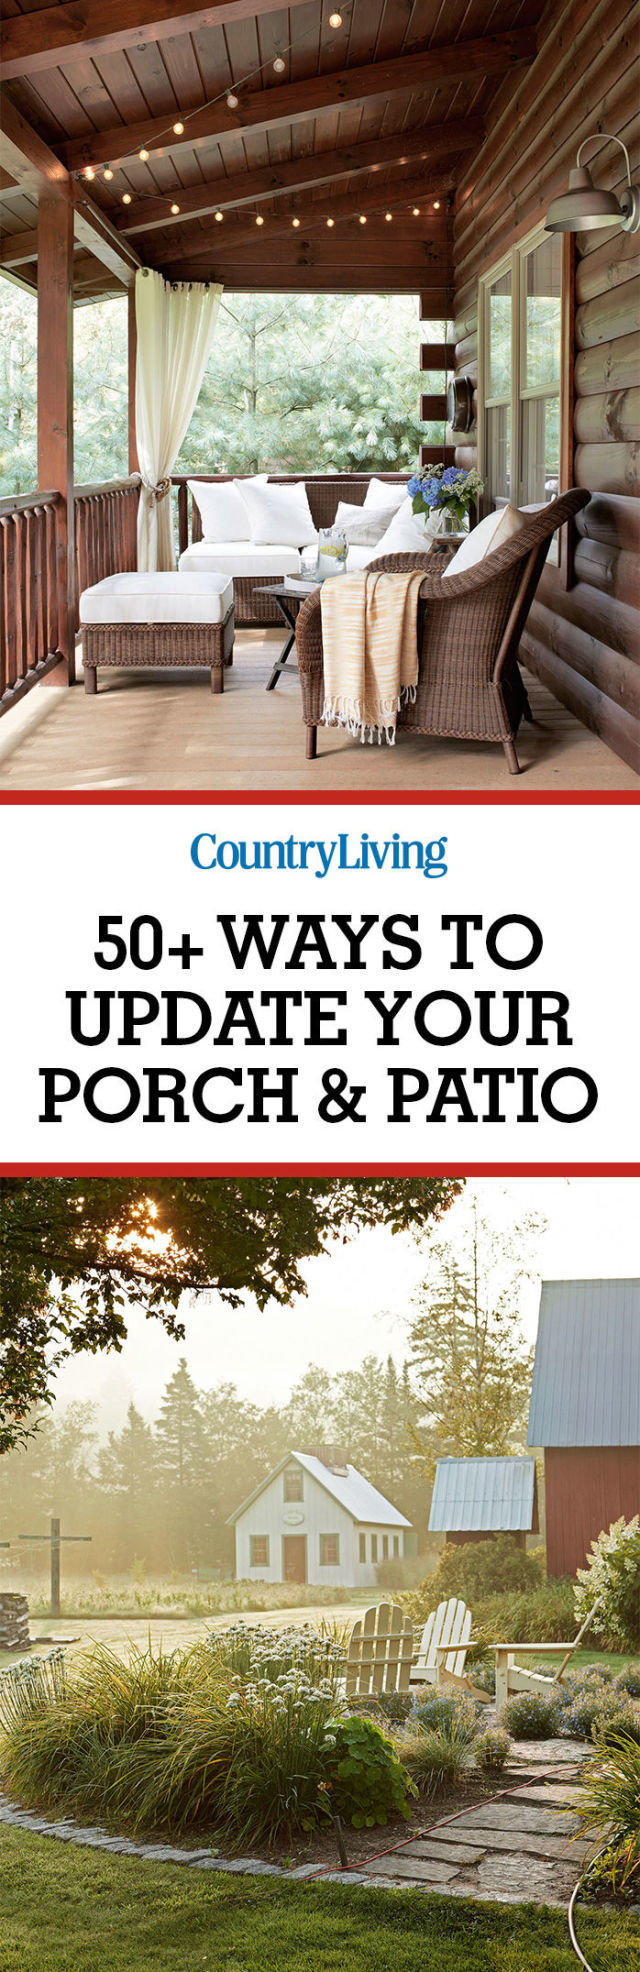 65+ best patio designs for 2017 - ideas for front porch and patio